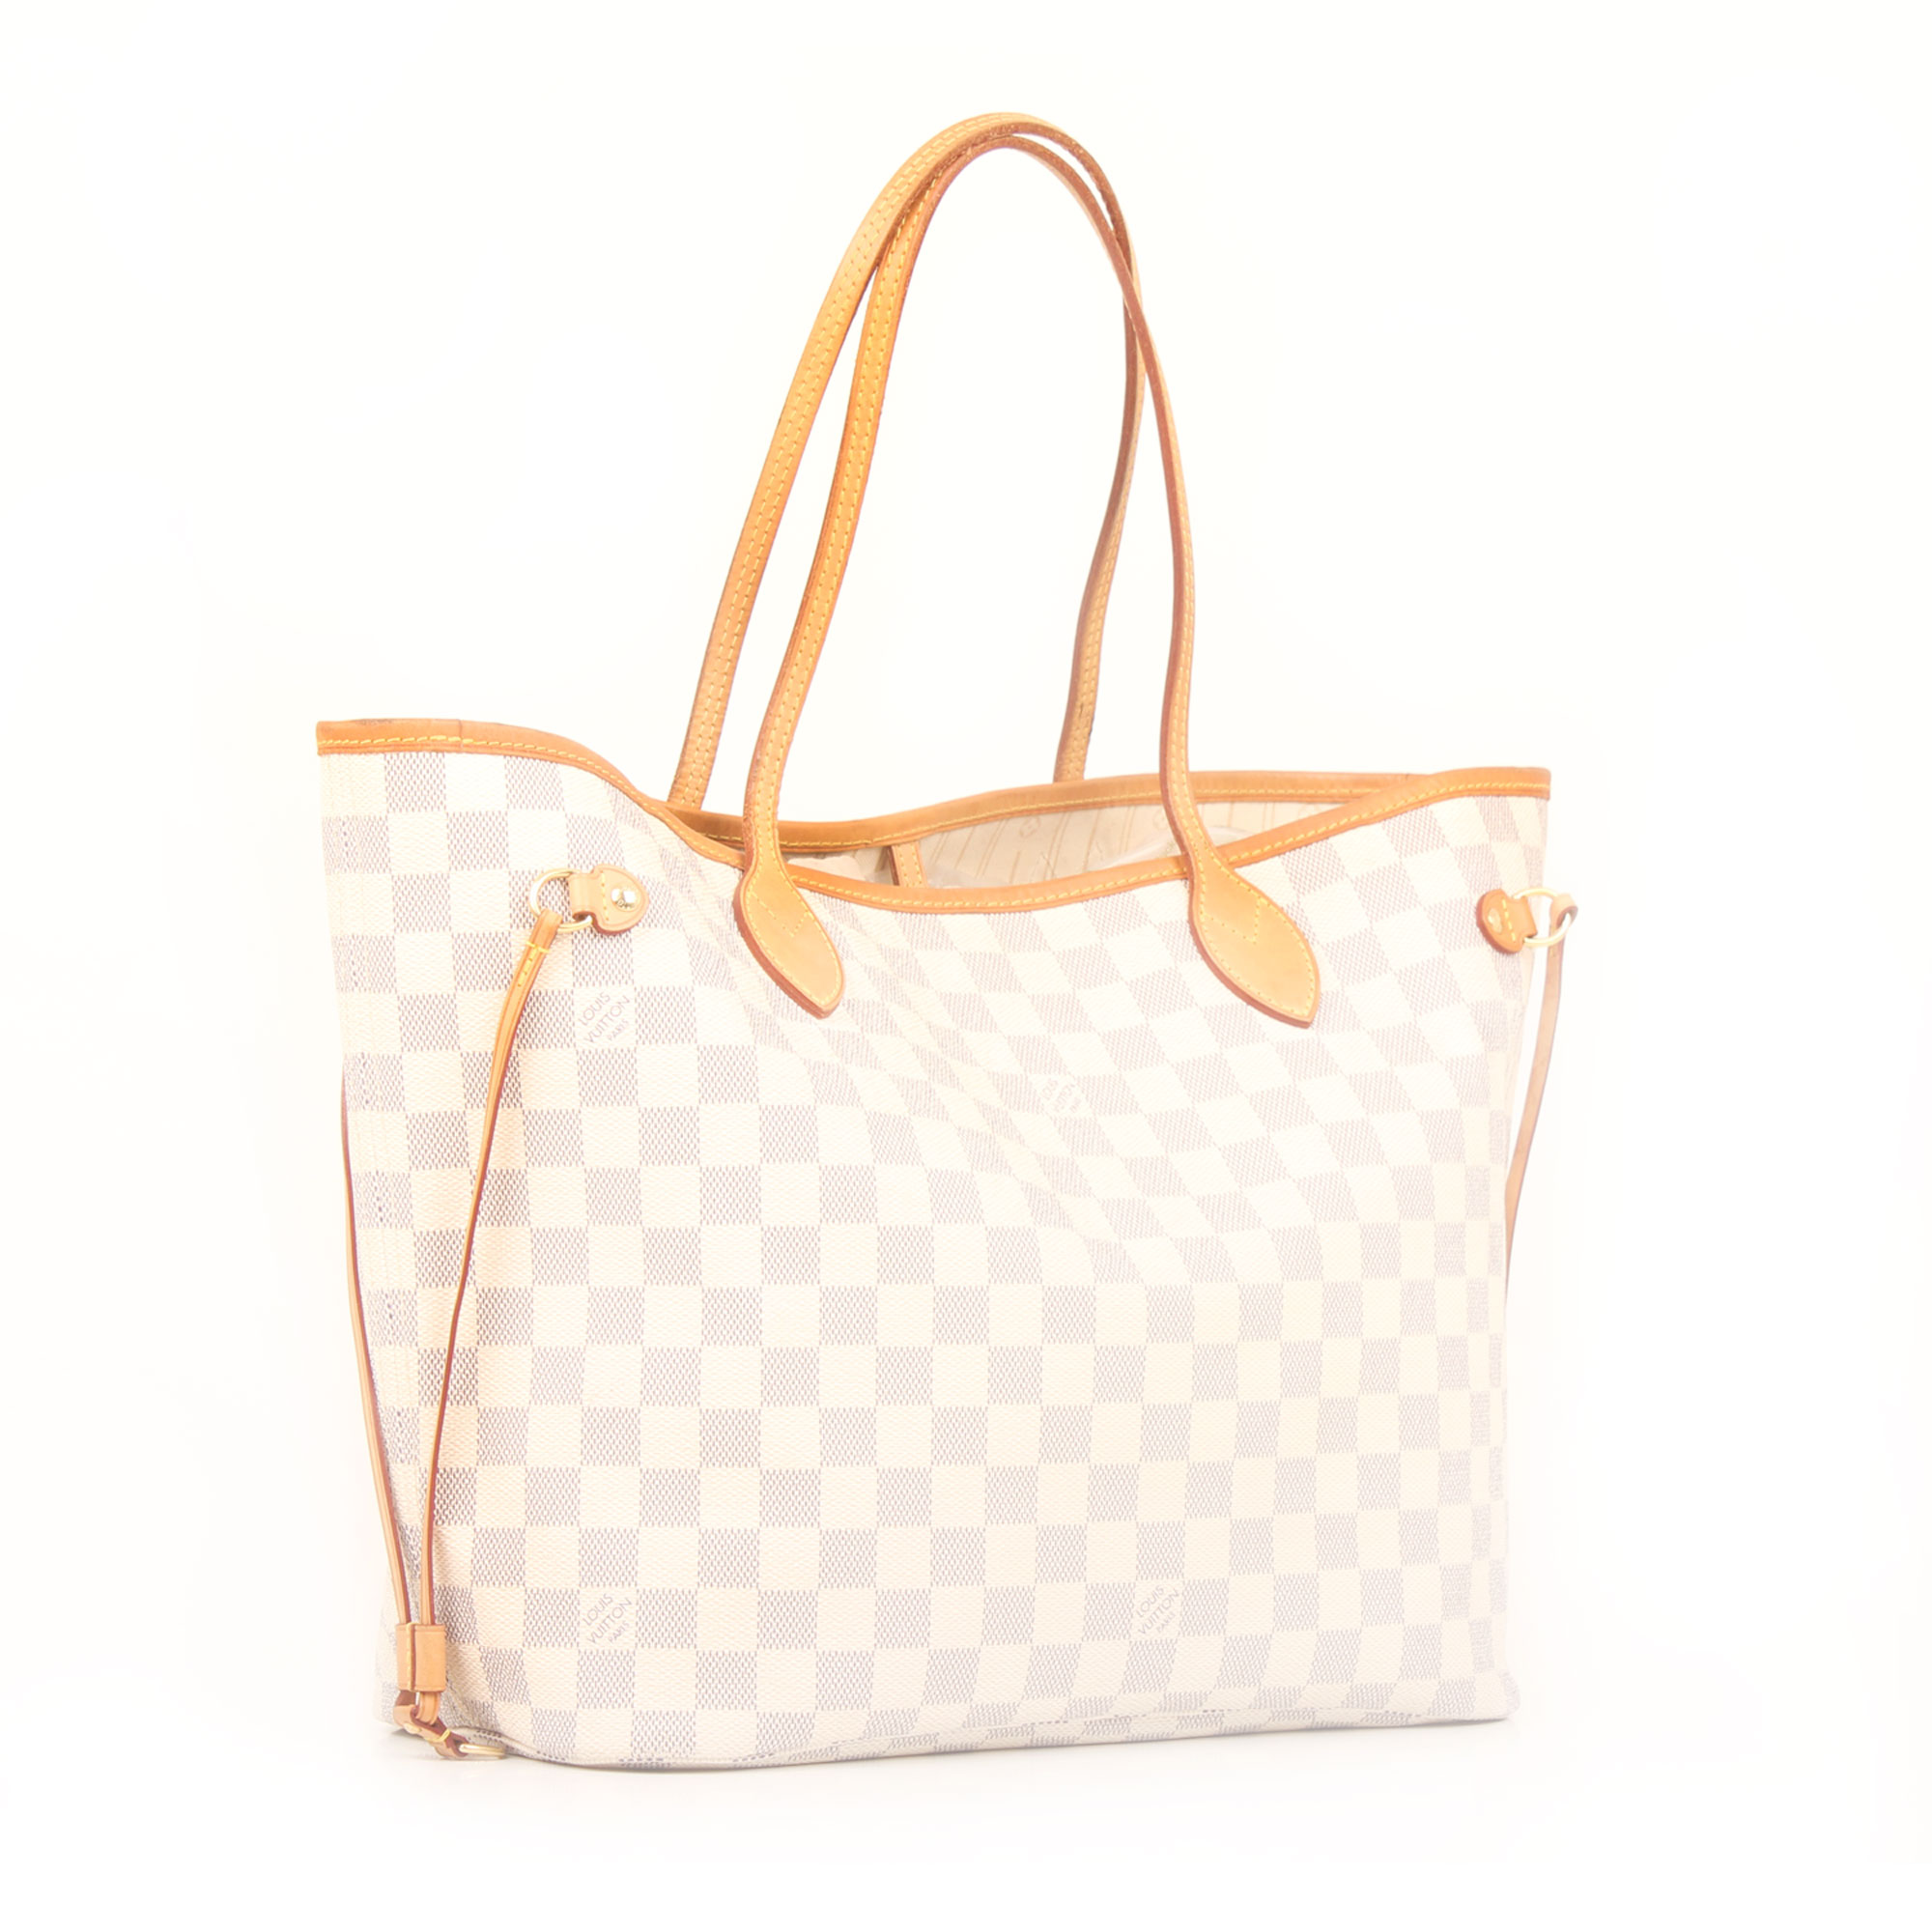 Imagen general del bolso louis vuitton neverfull mm damier azur